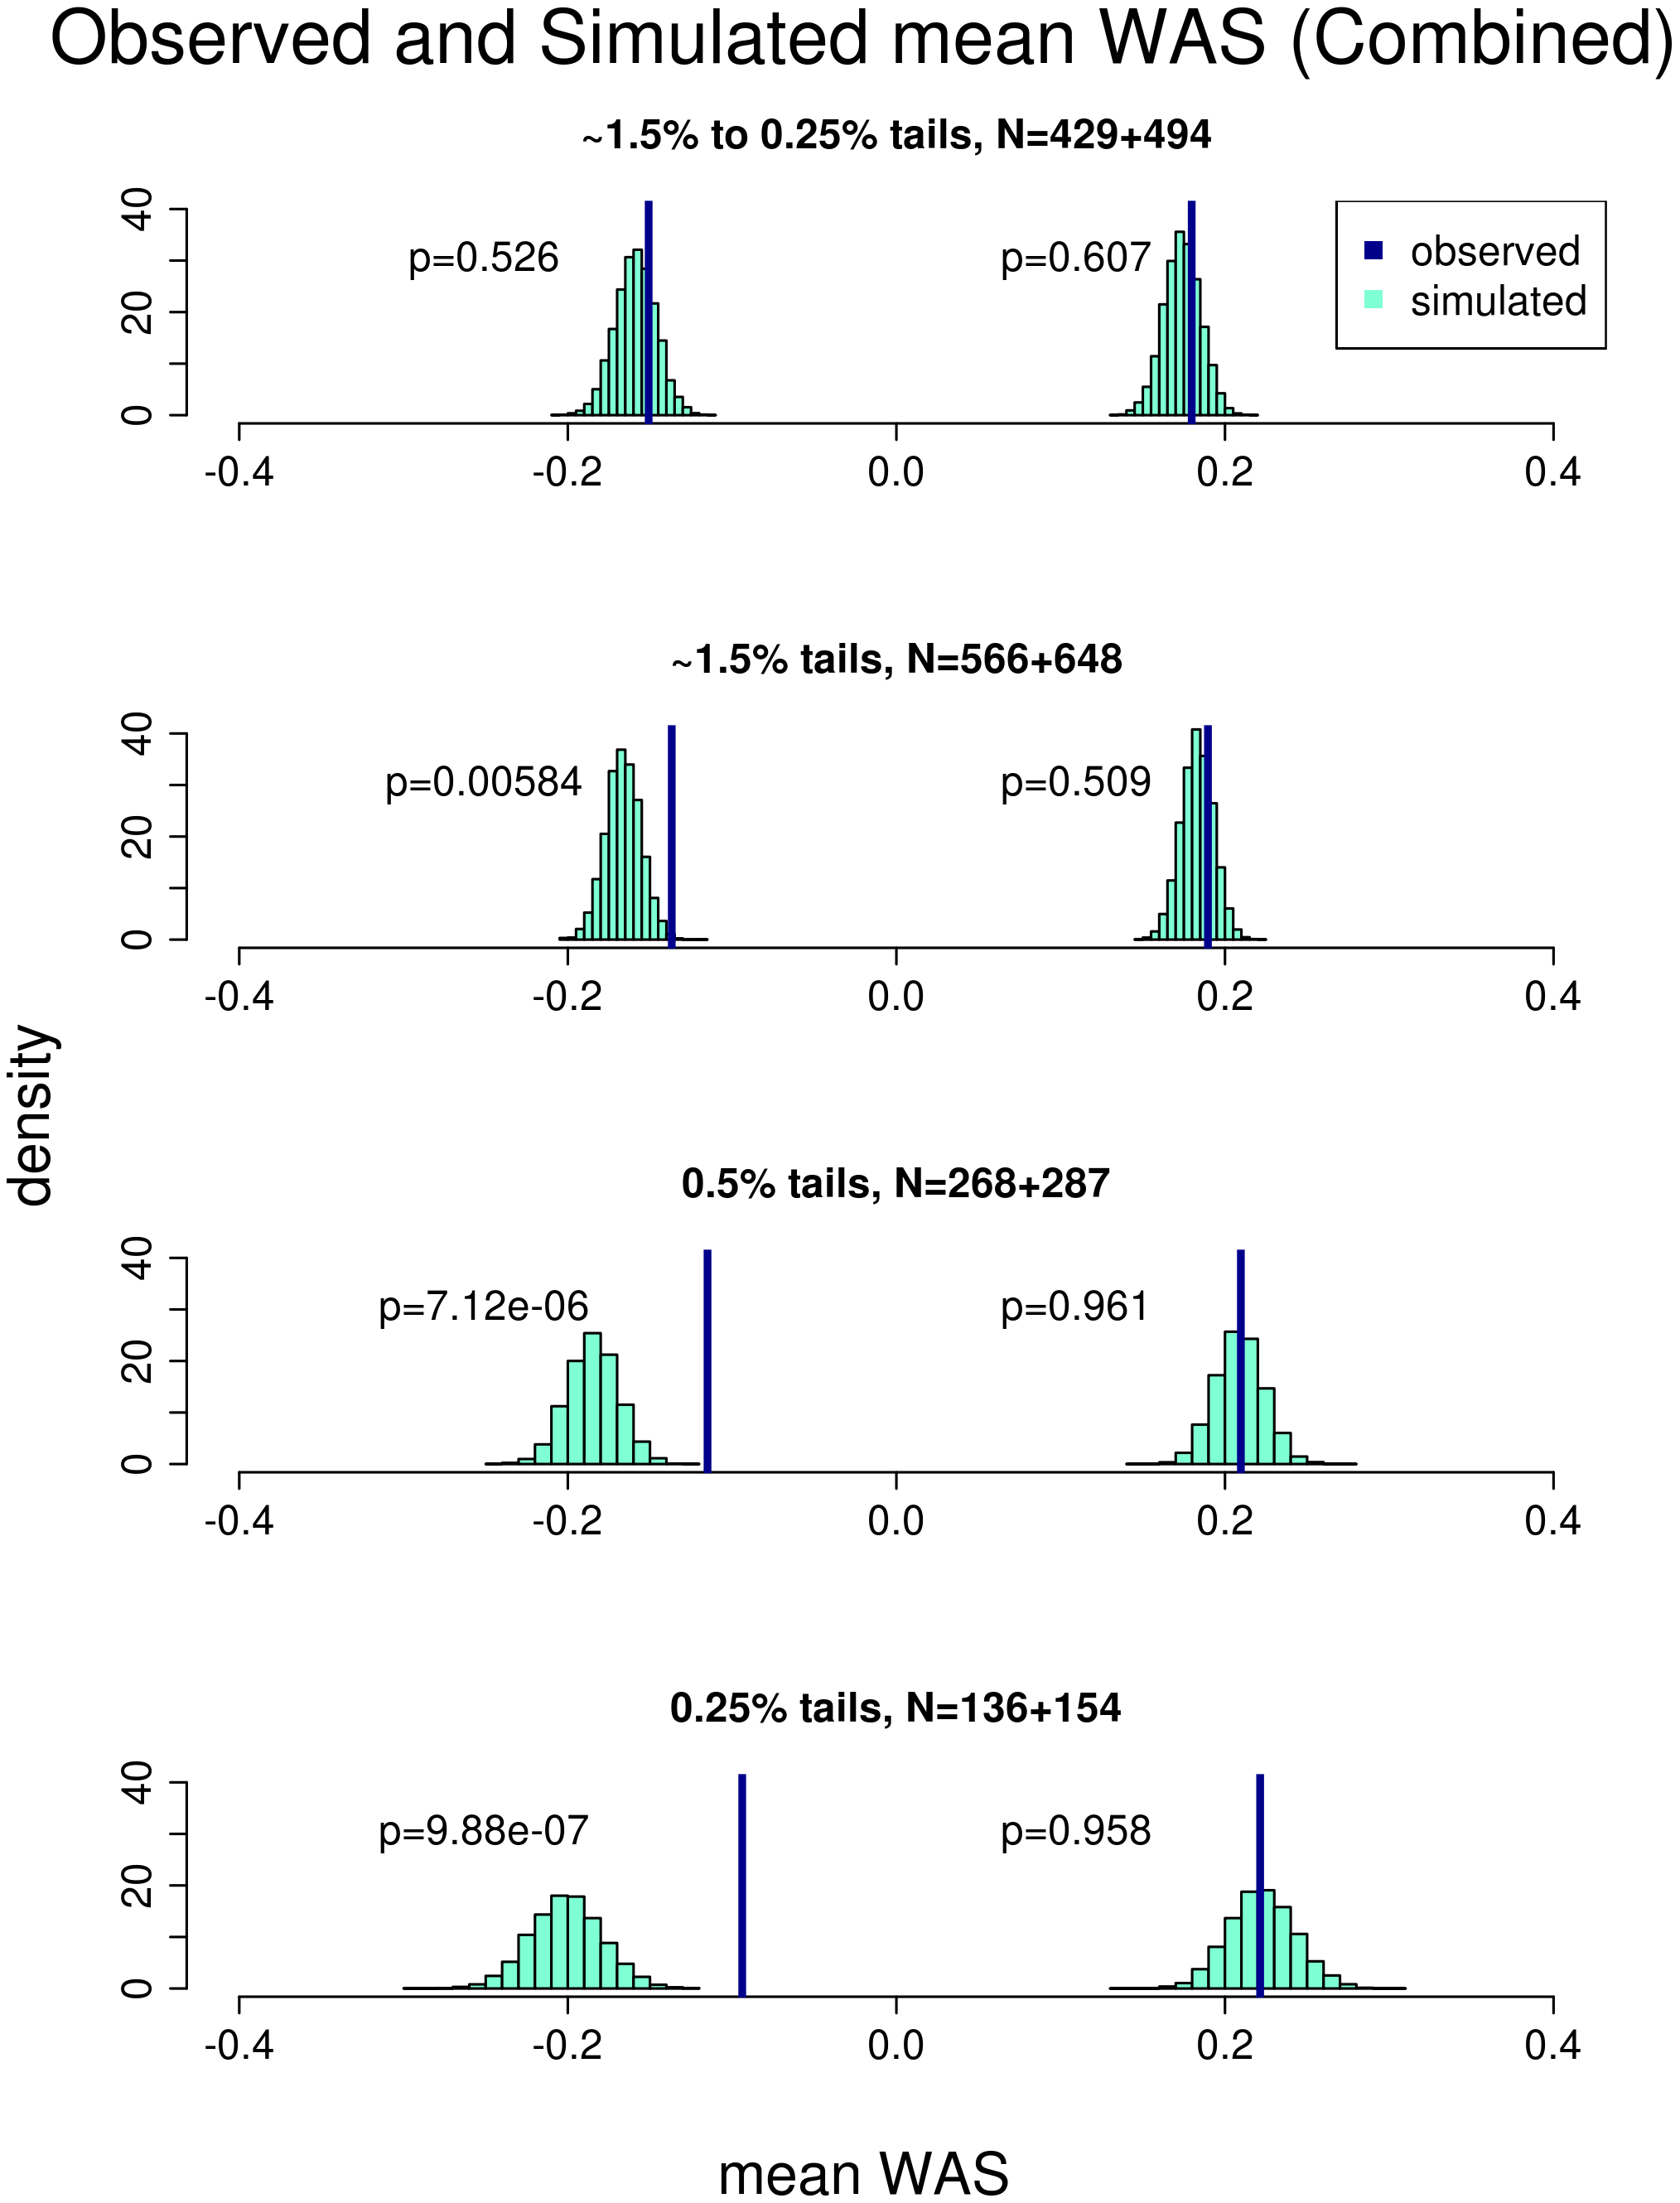 Comparison of the observed versus simulated mean weighted allele score (<i>WAS</i>) in the combined cohort.